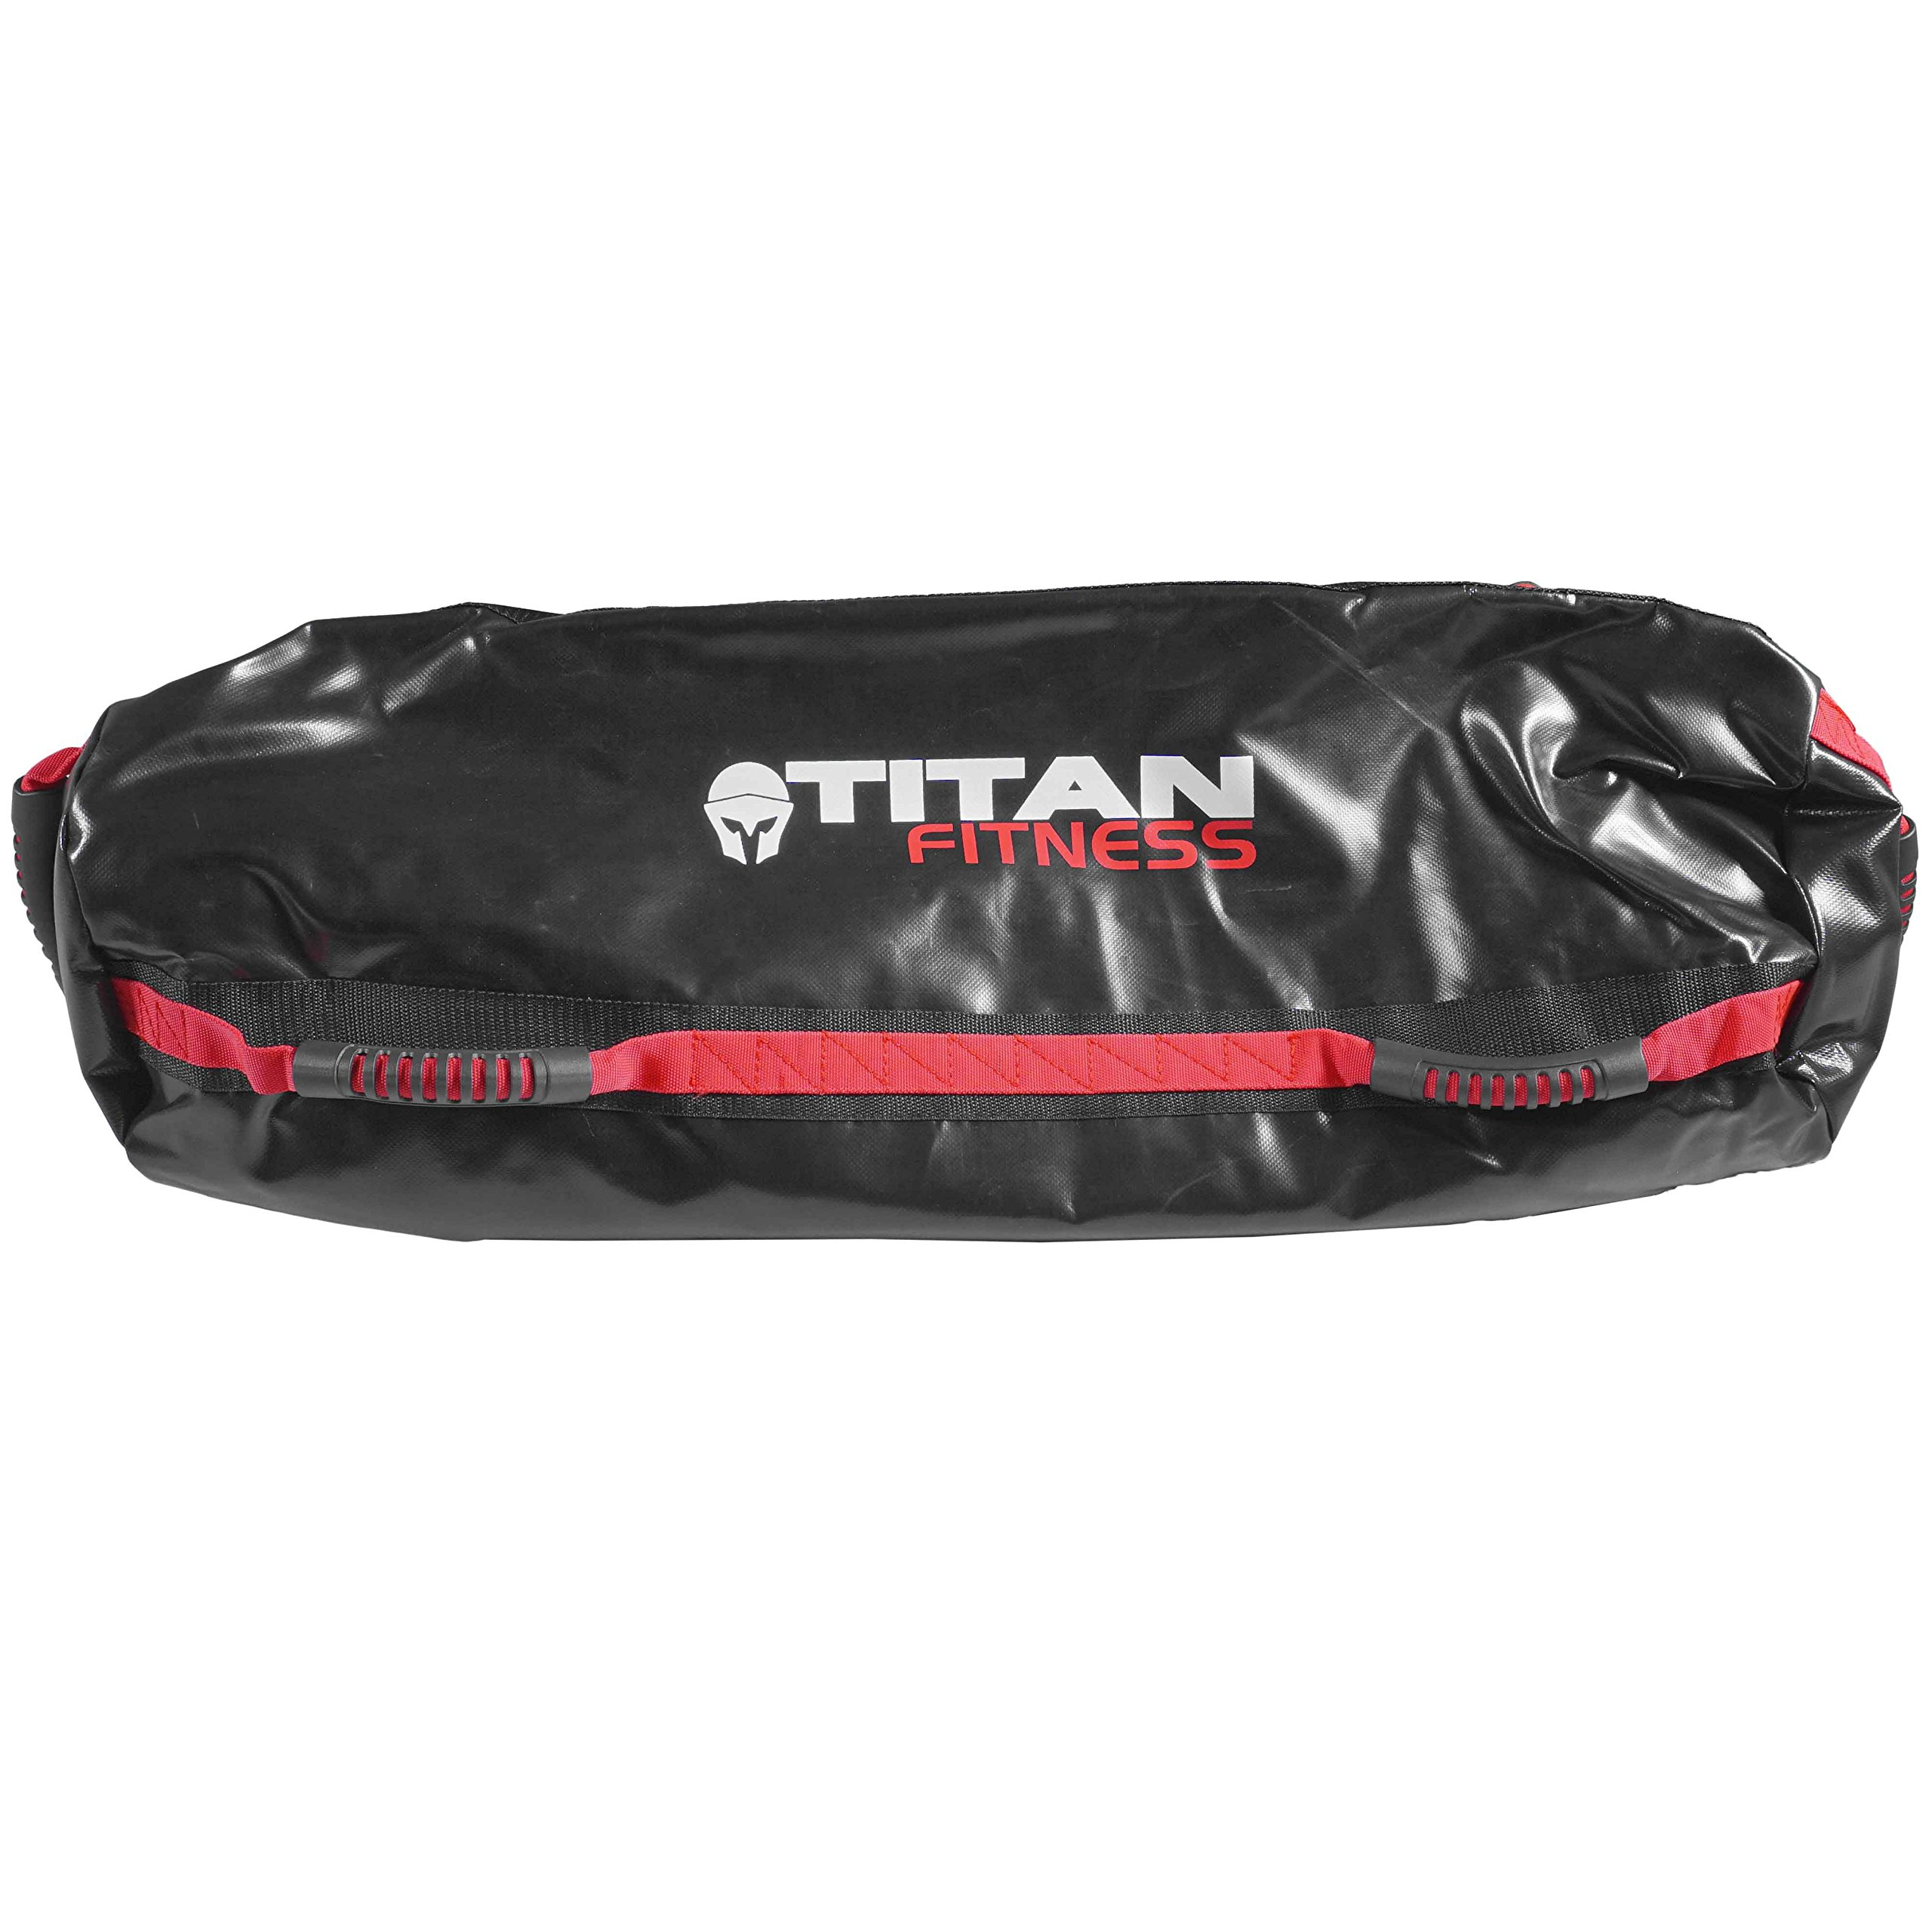 Titan Fitness 80 lb Heavy Duty Workout Weight Sandbag Exercise Training Bag by Titan Fitness (Image #2)